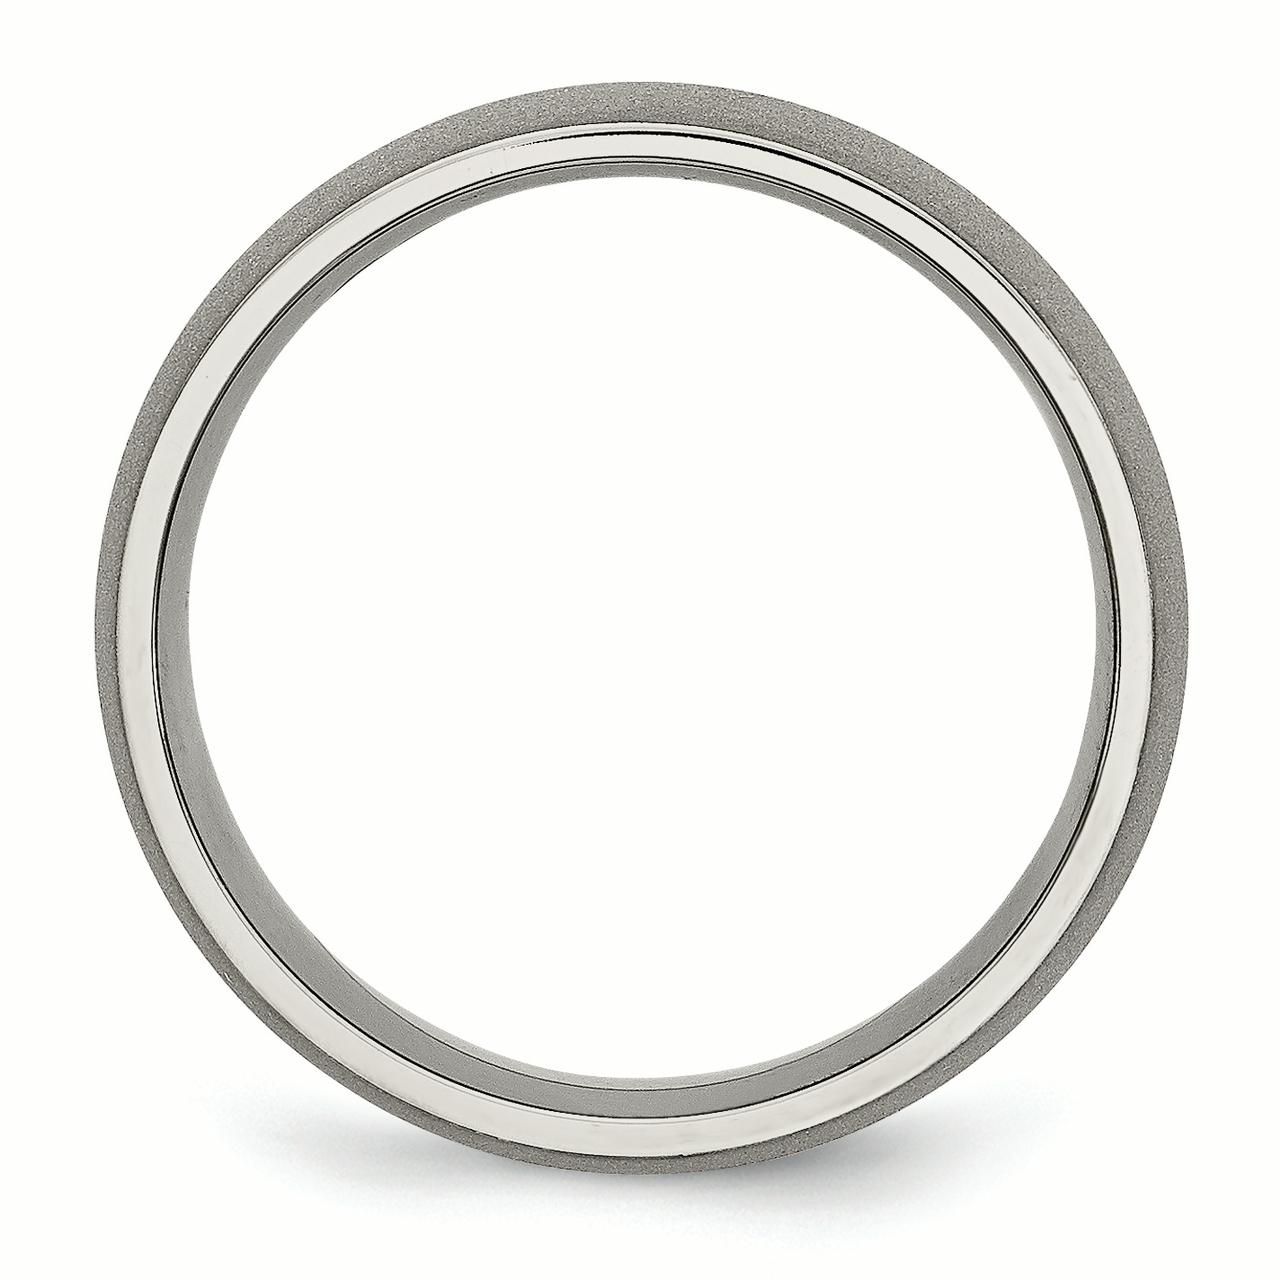 Titanium Stone Finish 7mm Wedding Ring Band Size 9.50 Classic Domed Fashion Jewelry Gifts For Women For Her - image 4 of 6